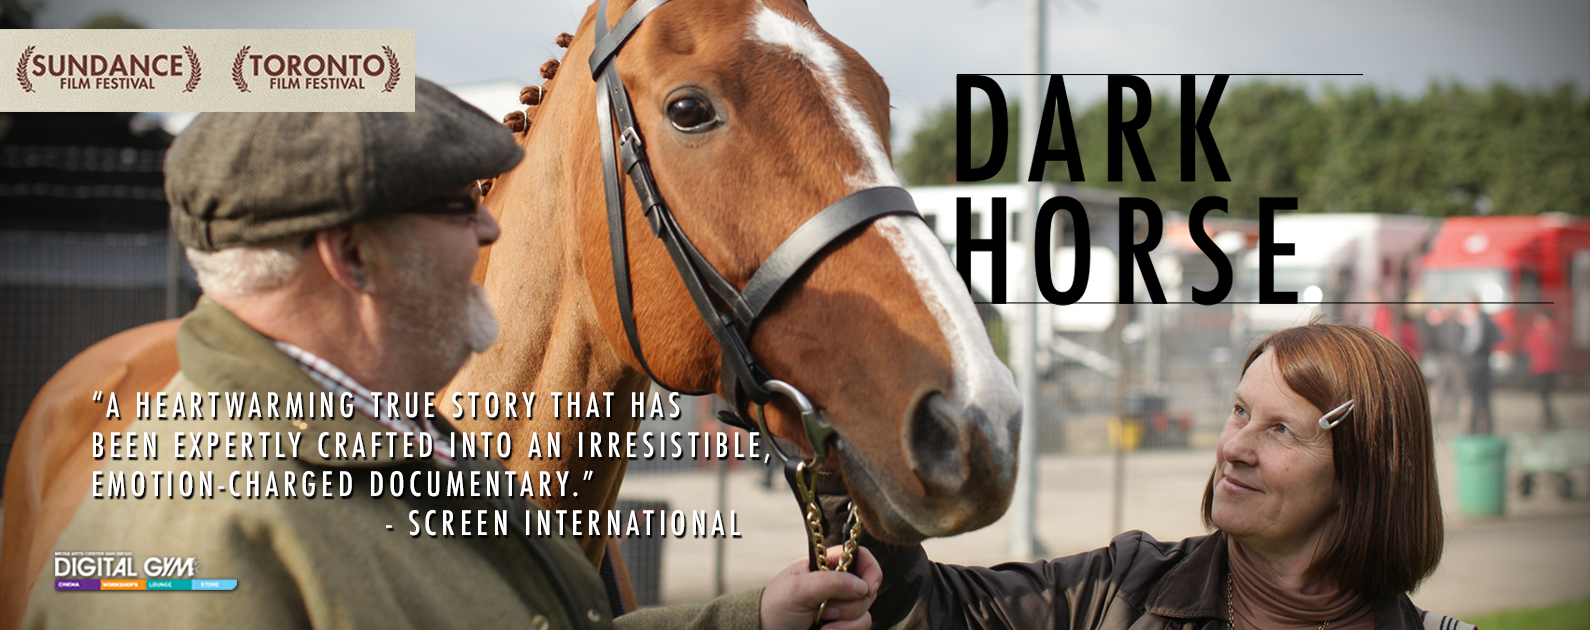 Award Winning Horse Racing Documentary DARK HORSE Gallops into the Digital Gym Cinema!